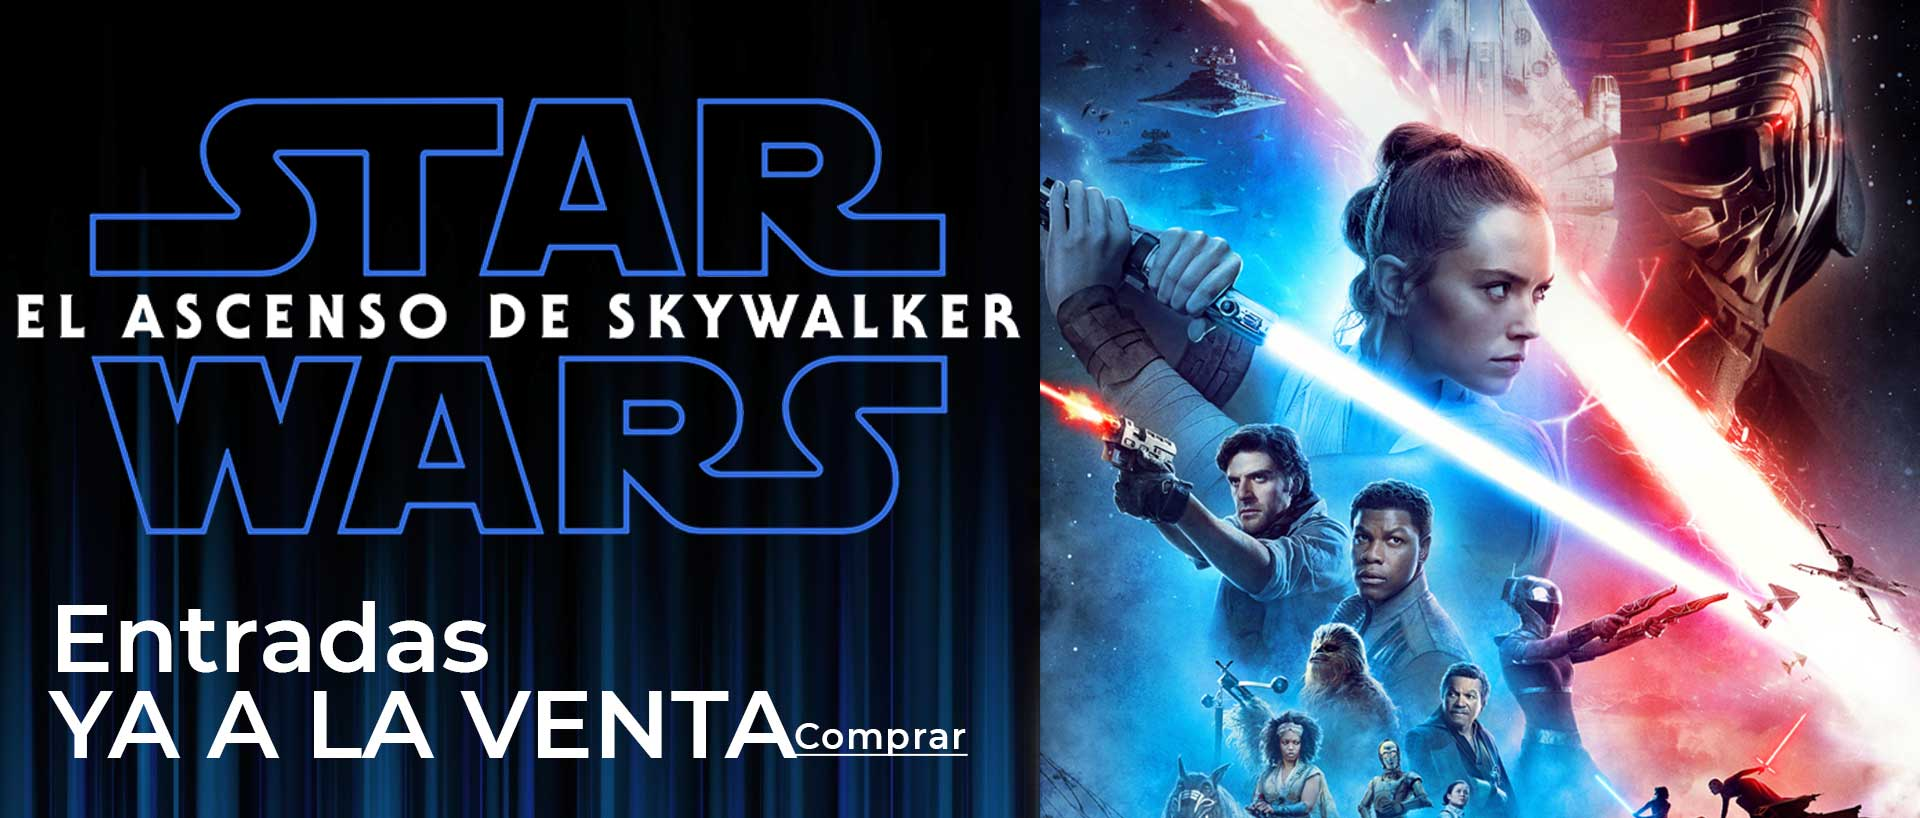 star-wars-banner-web.jpg